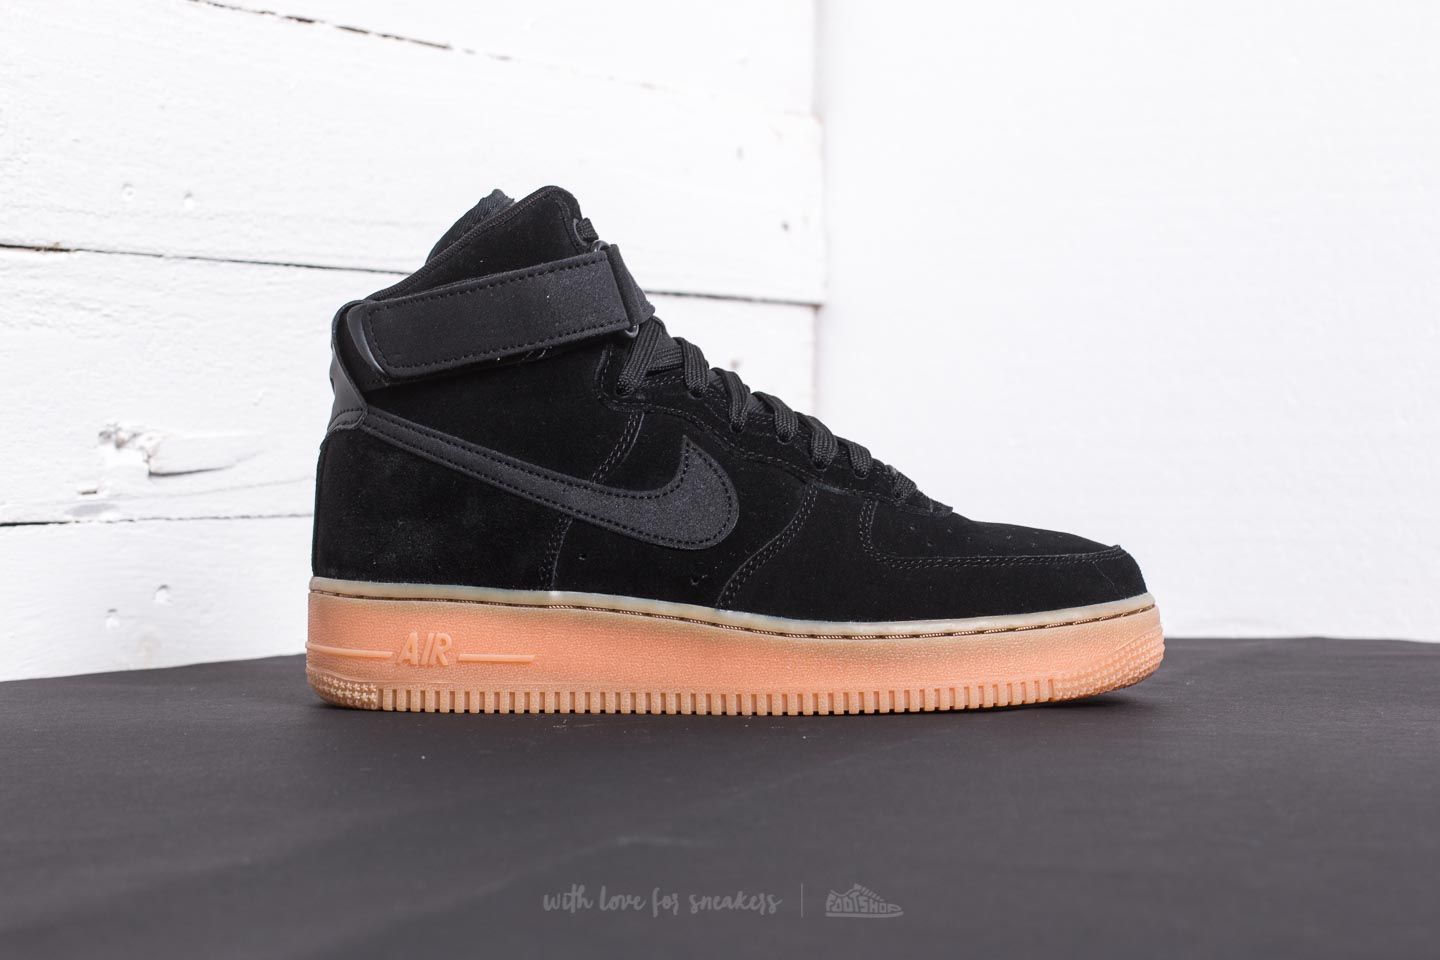 Nike Air Force 1 High '07 LV8 Suede Black/ Black-Gum Med Brown